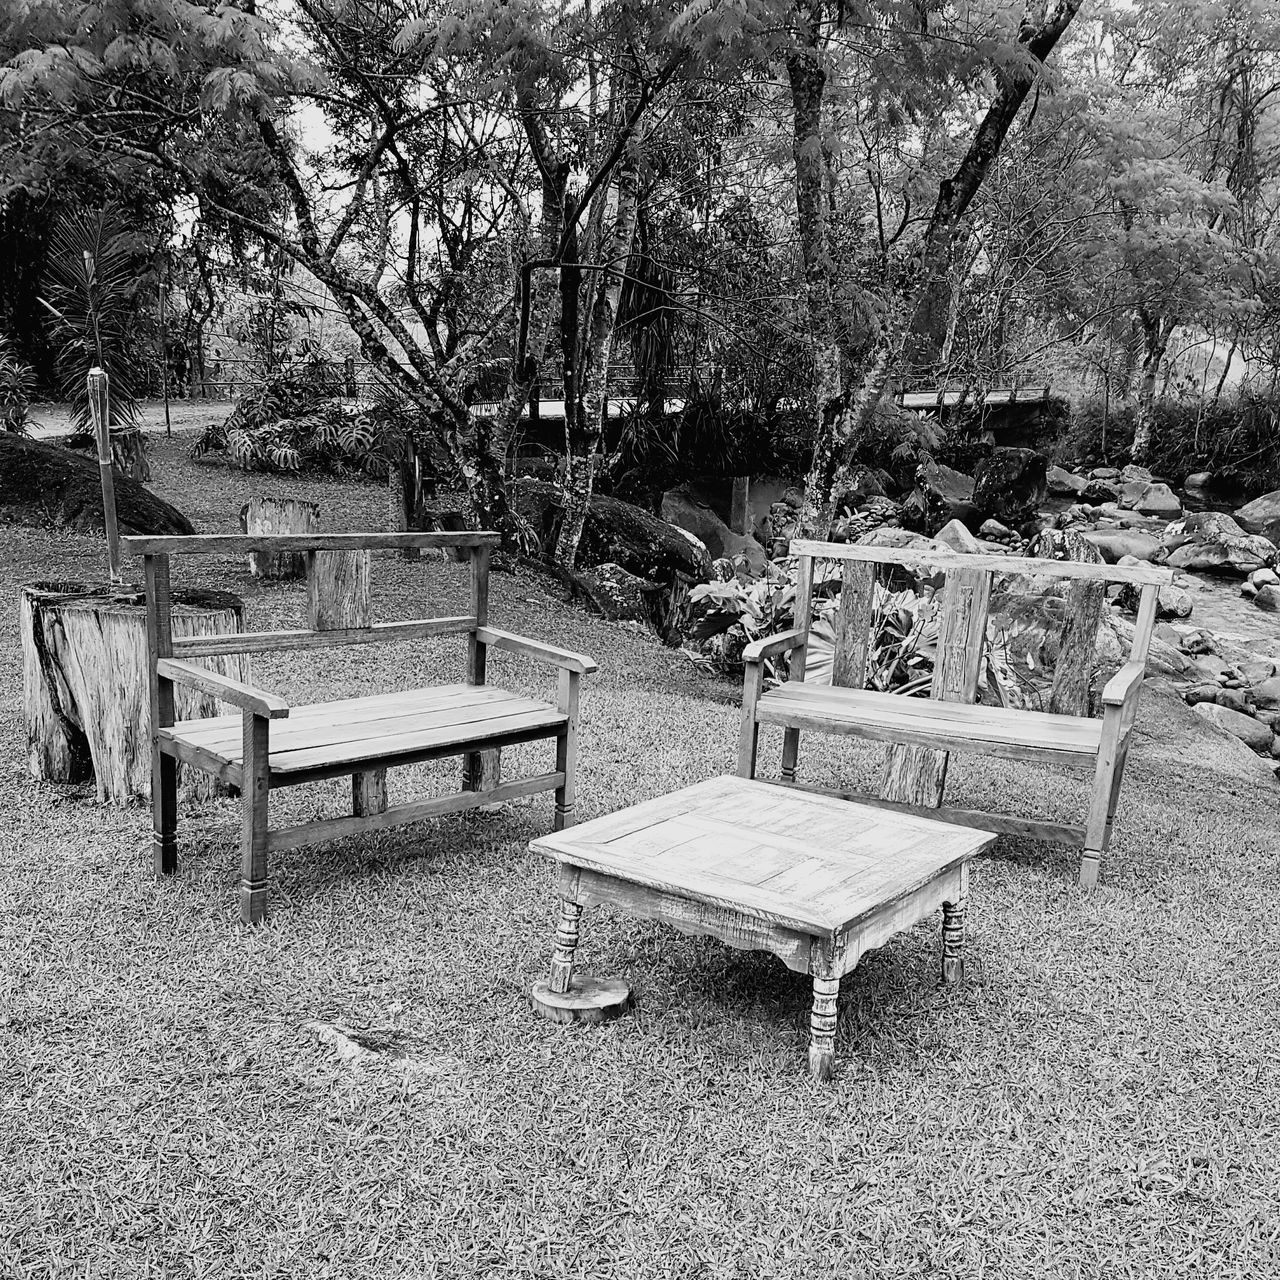 table, tree, absence, empty, chair, outdoors, tranquility, day, no people, nature, park - man made space, seat, beauty in nature